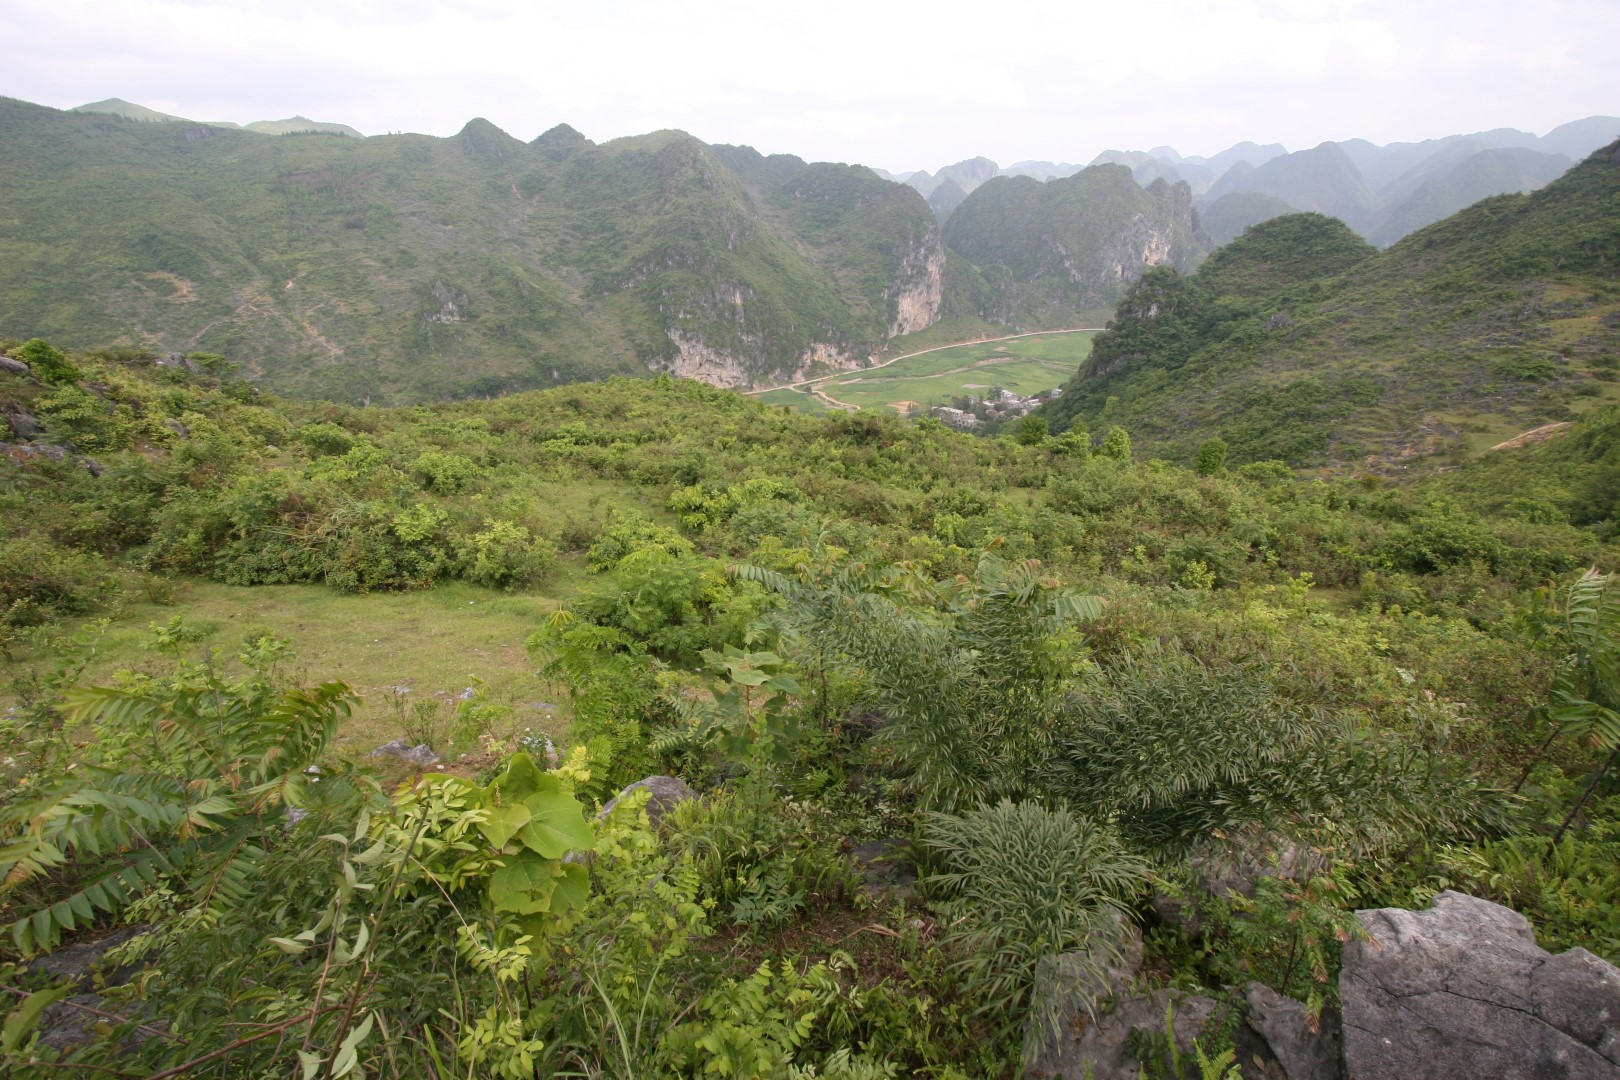 Cycas debaoensis in Fu Ping, Debao county, Guangxi, China